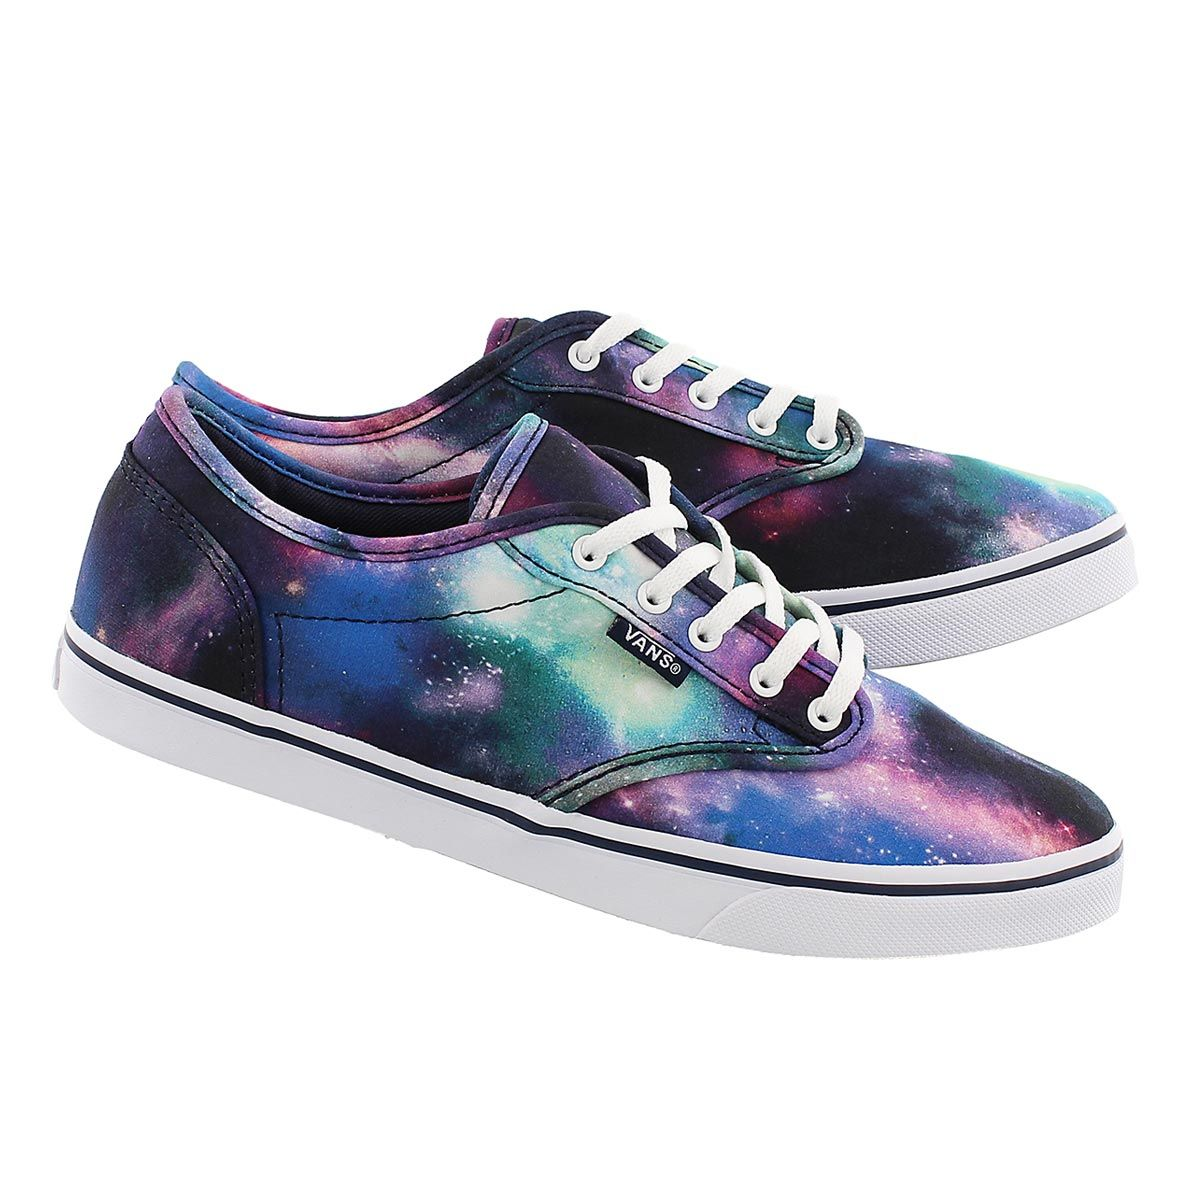 70c2b8cce7e2 Vans Women s ATWOOD LOW cosmic print lace up sneakers VN000ZUODC7 ...